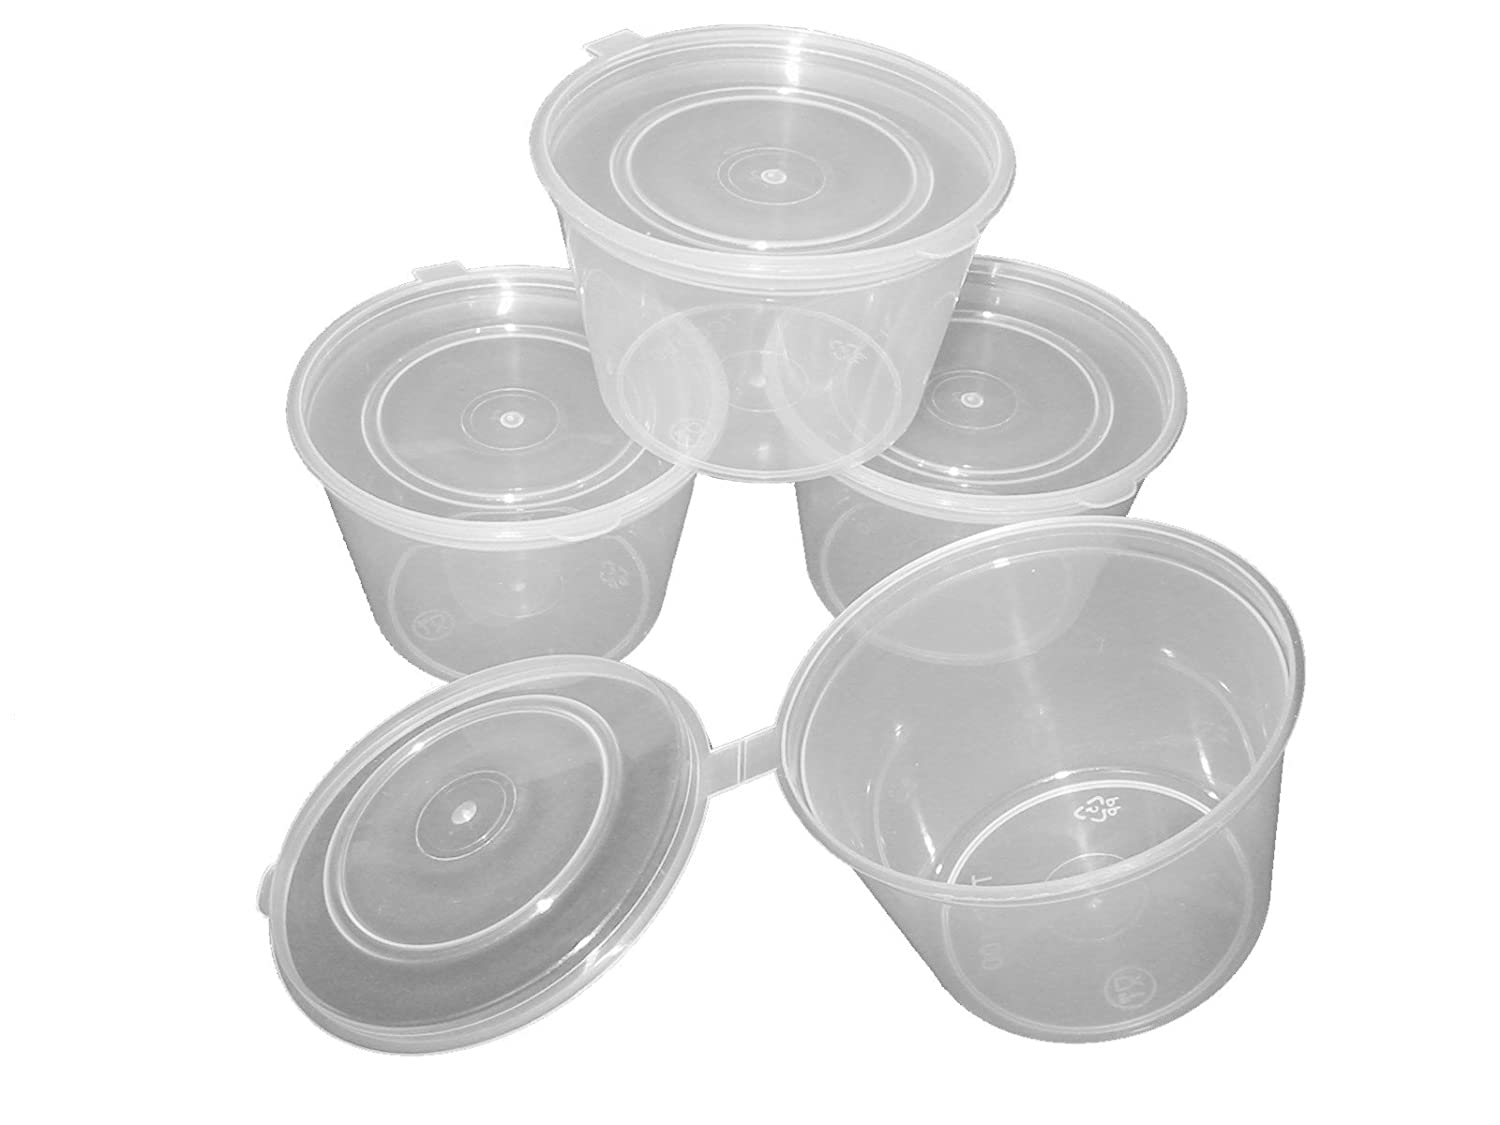 Awesome Amazon.com: 100ml Hinged Lid Plastic Pot X 50 (Food/Craft/Storage Containers)  By SHC Web: Paintings